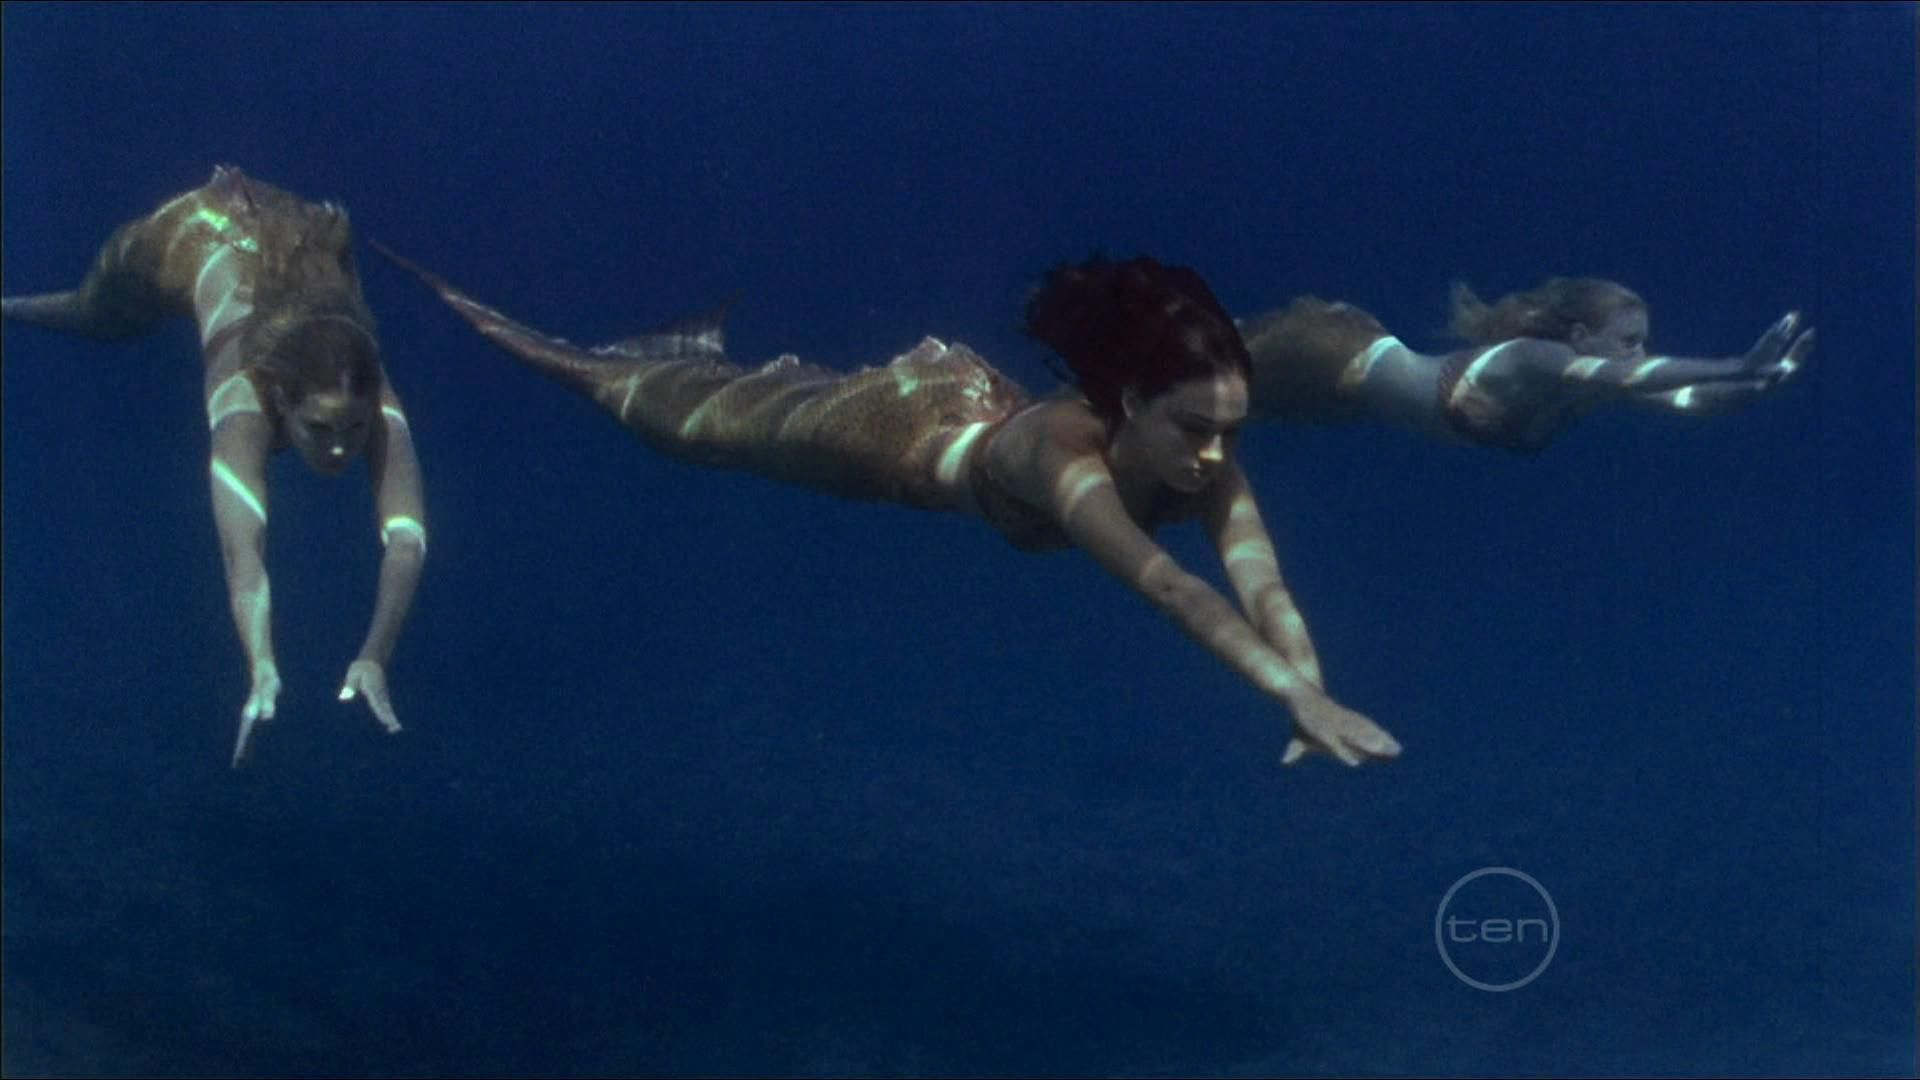 H20 Just Add Water Mermaids H2o Mermaids Real Mermaids Photos Real Mermaids